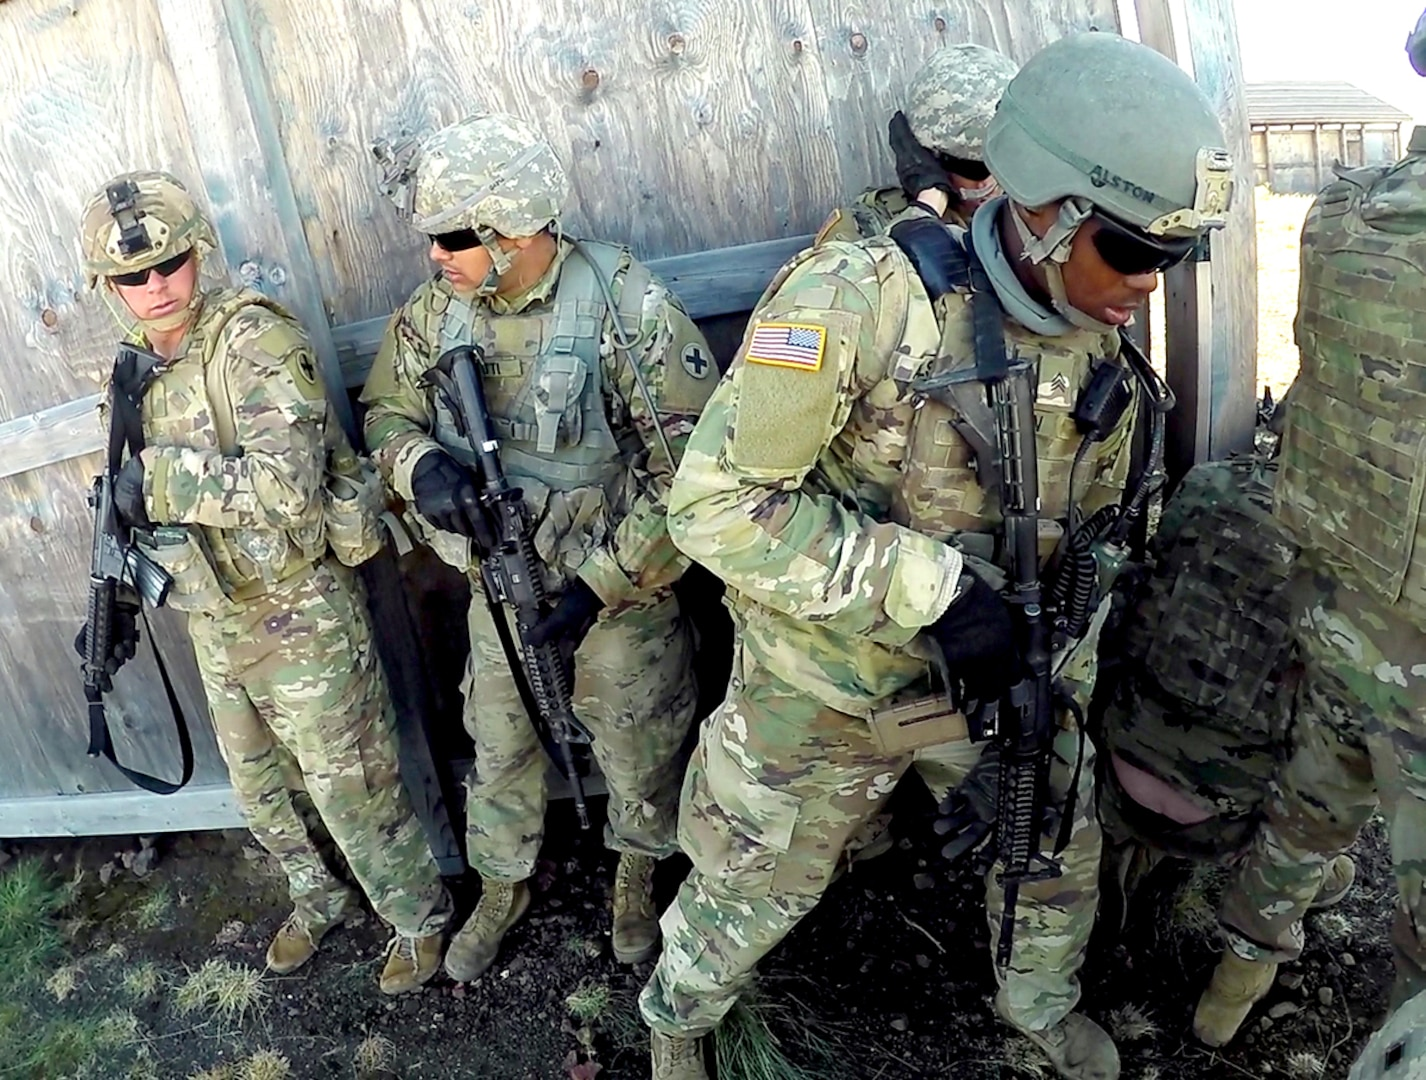 Soldiers from the Illinois National Guard stack to prepare to breach a structure during the live fire exercise for Rising Thunder 19.